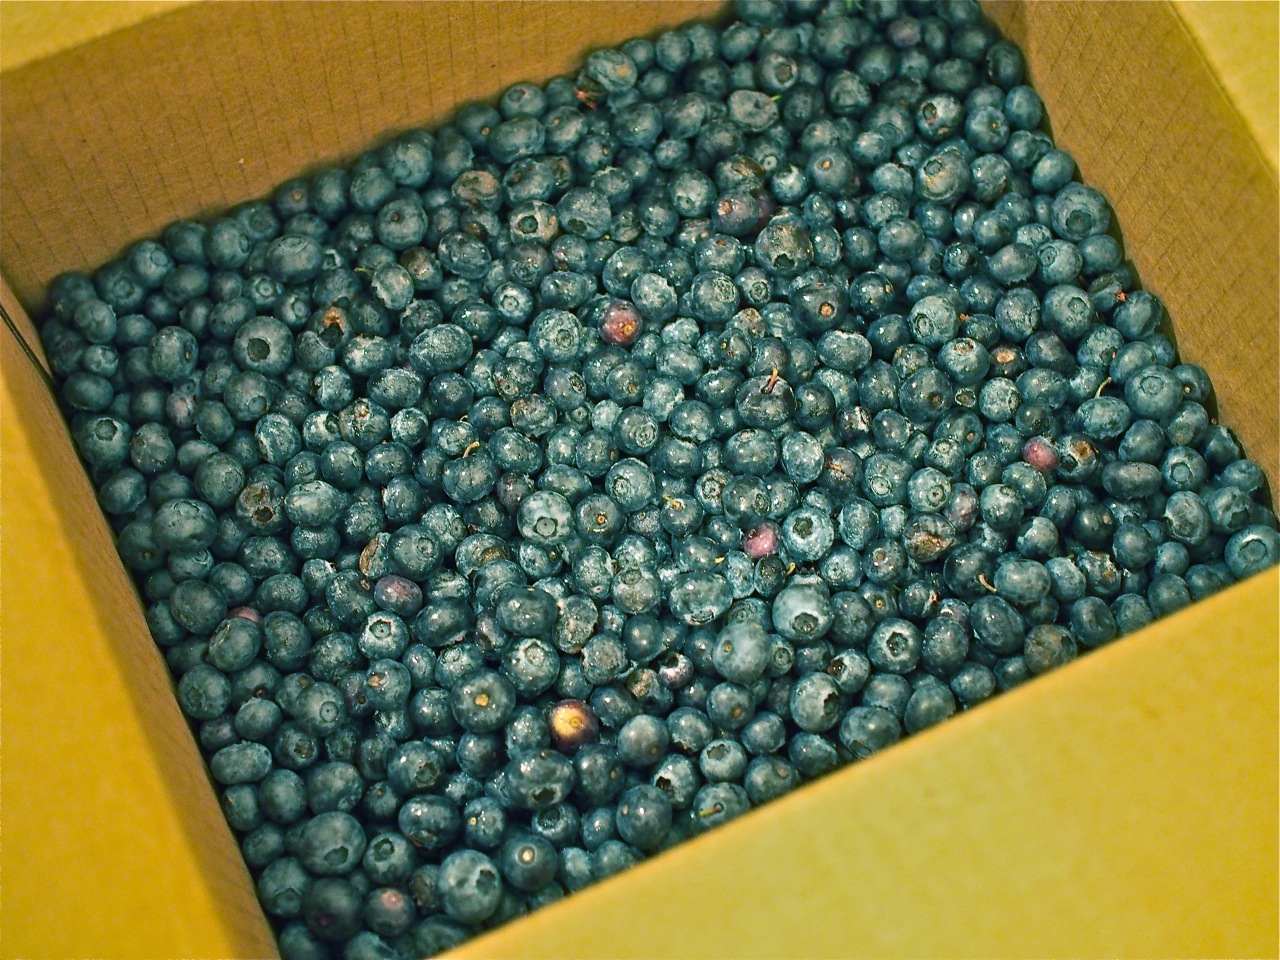 10lb of blueberries